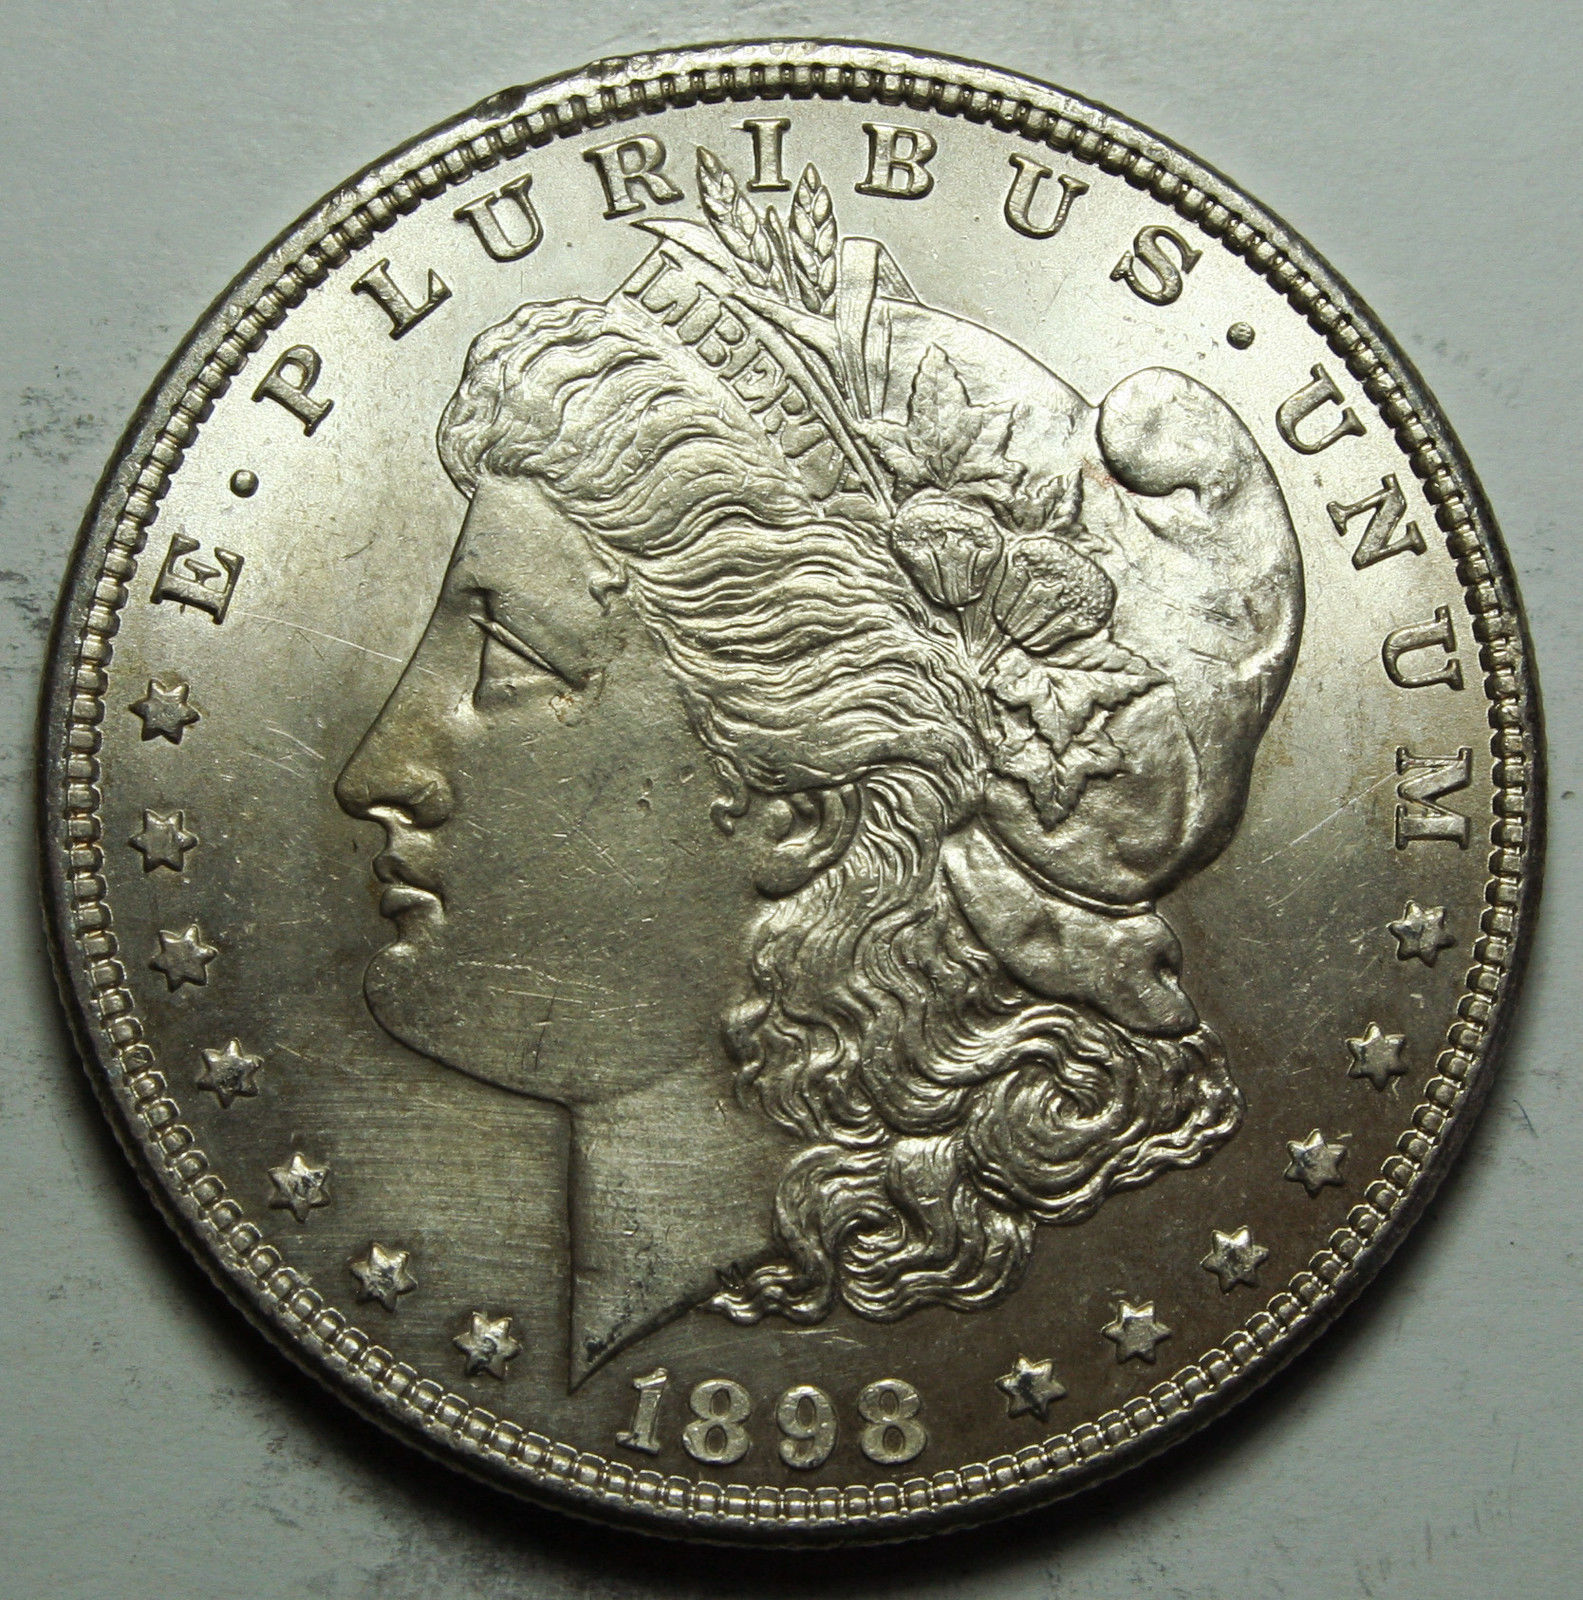 1898 MORGAN SILVER DOLLAR COIN Lot# D 61